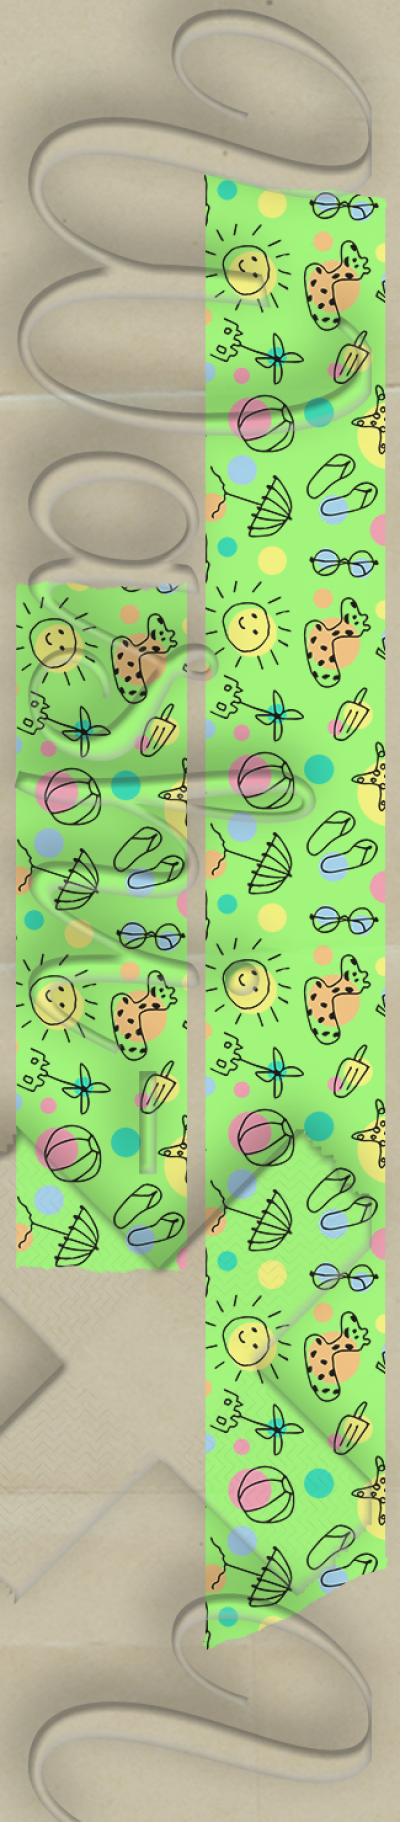 Summer patterned washi tape style 1